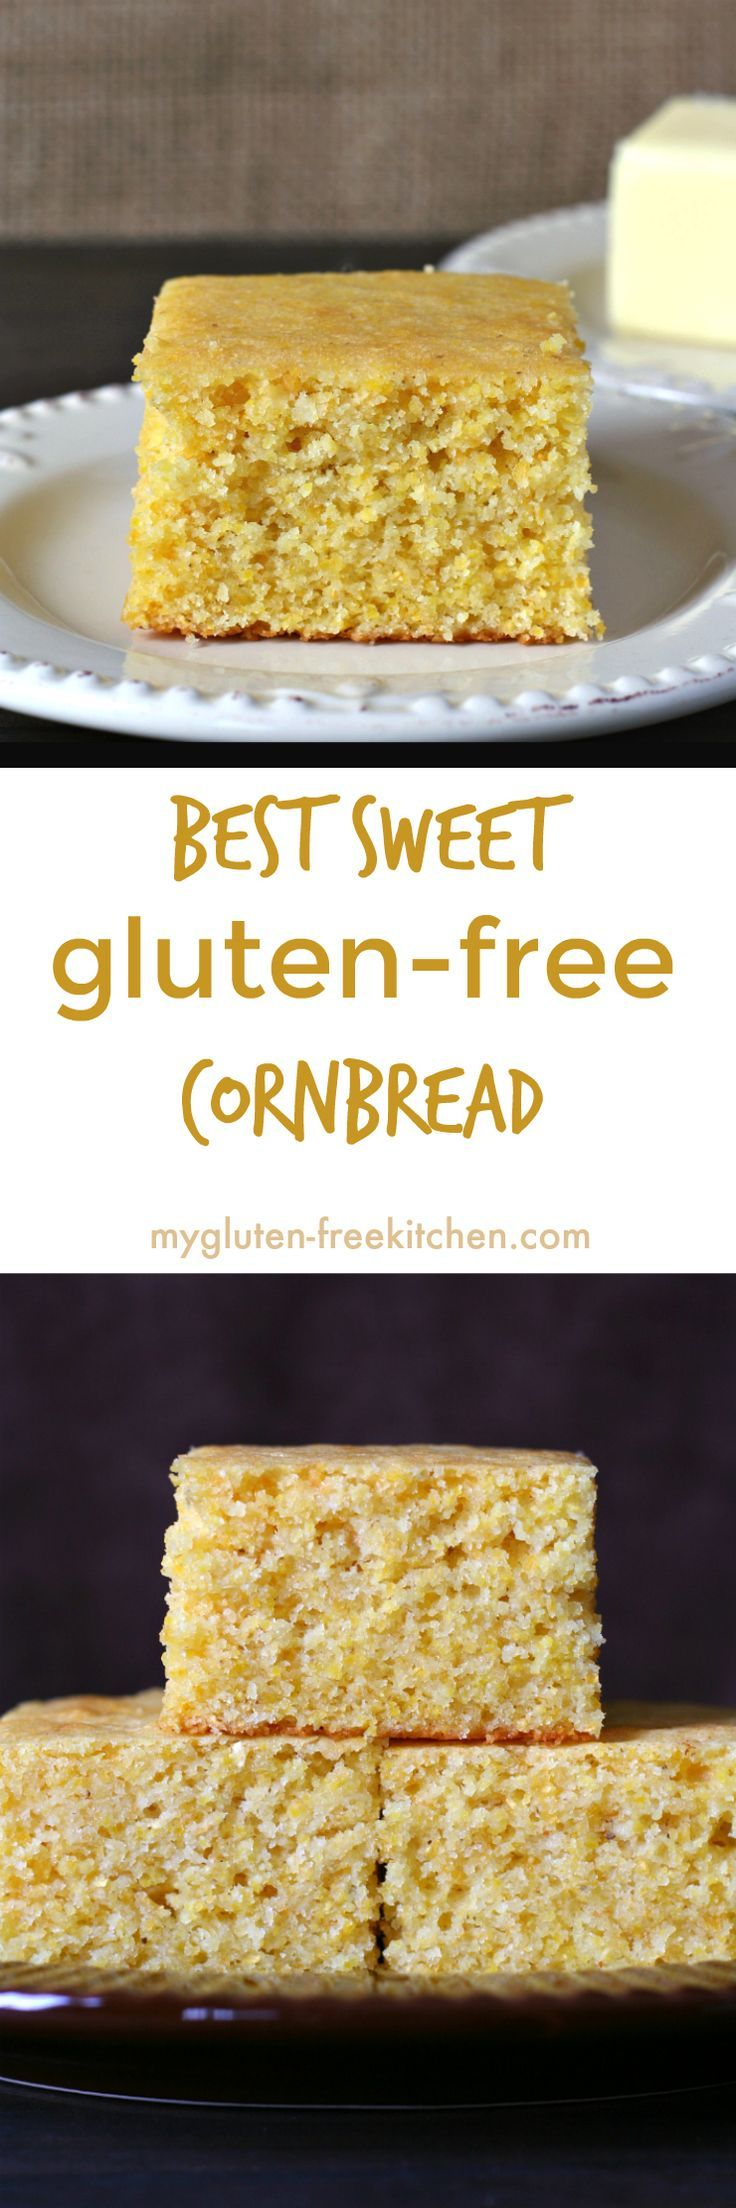 Best Sweet Gluten-free Cornbread recipe. Tried and true family favorite and a favorite at potlucks!